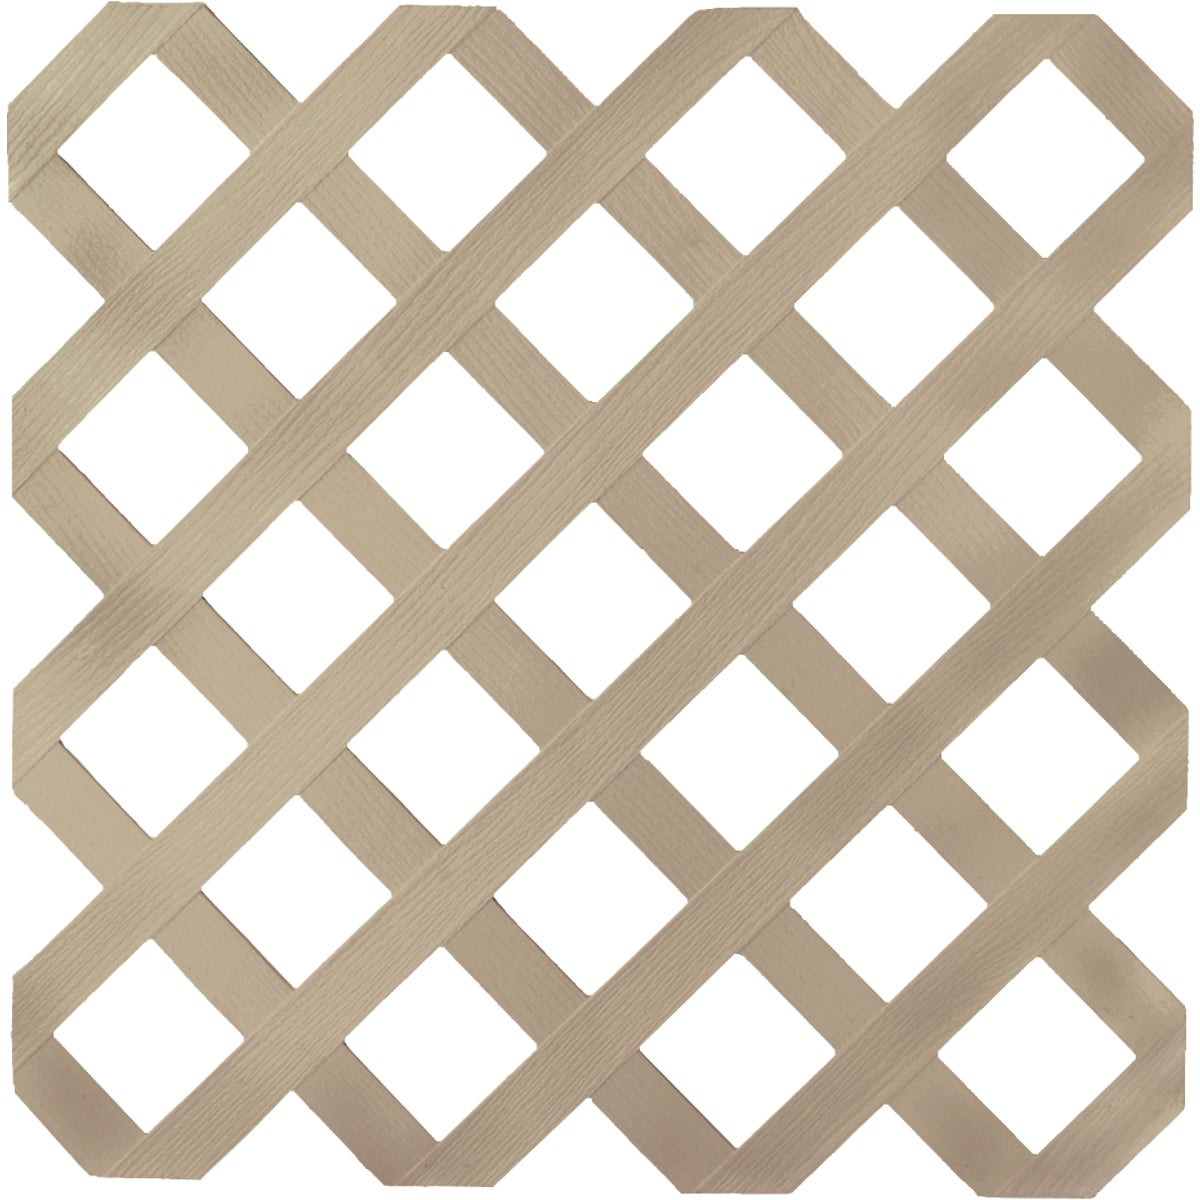 4X8 BROWNSTONE LATTICE - 103647 by Ufpi   Plstc Lattice